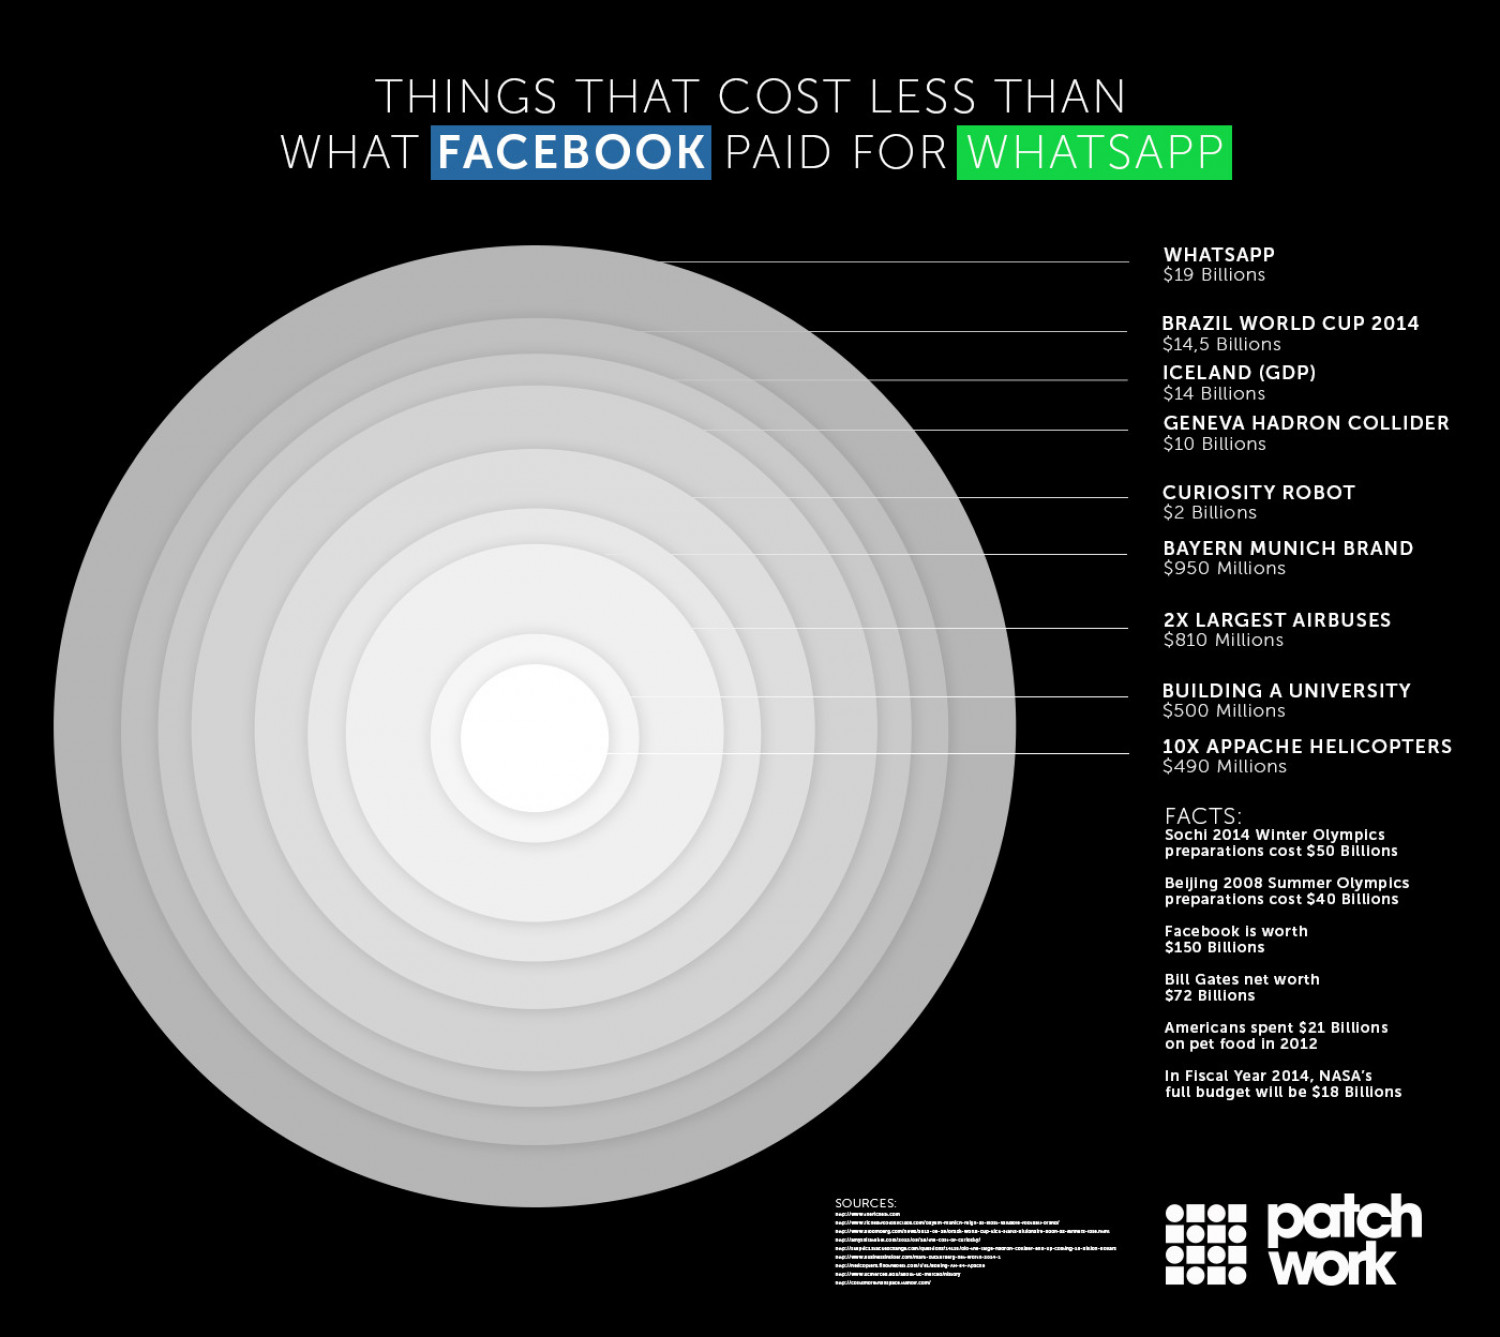 Things That Cost Less Than What Facebook Paid For Whatsapp Infographic